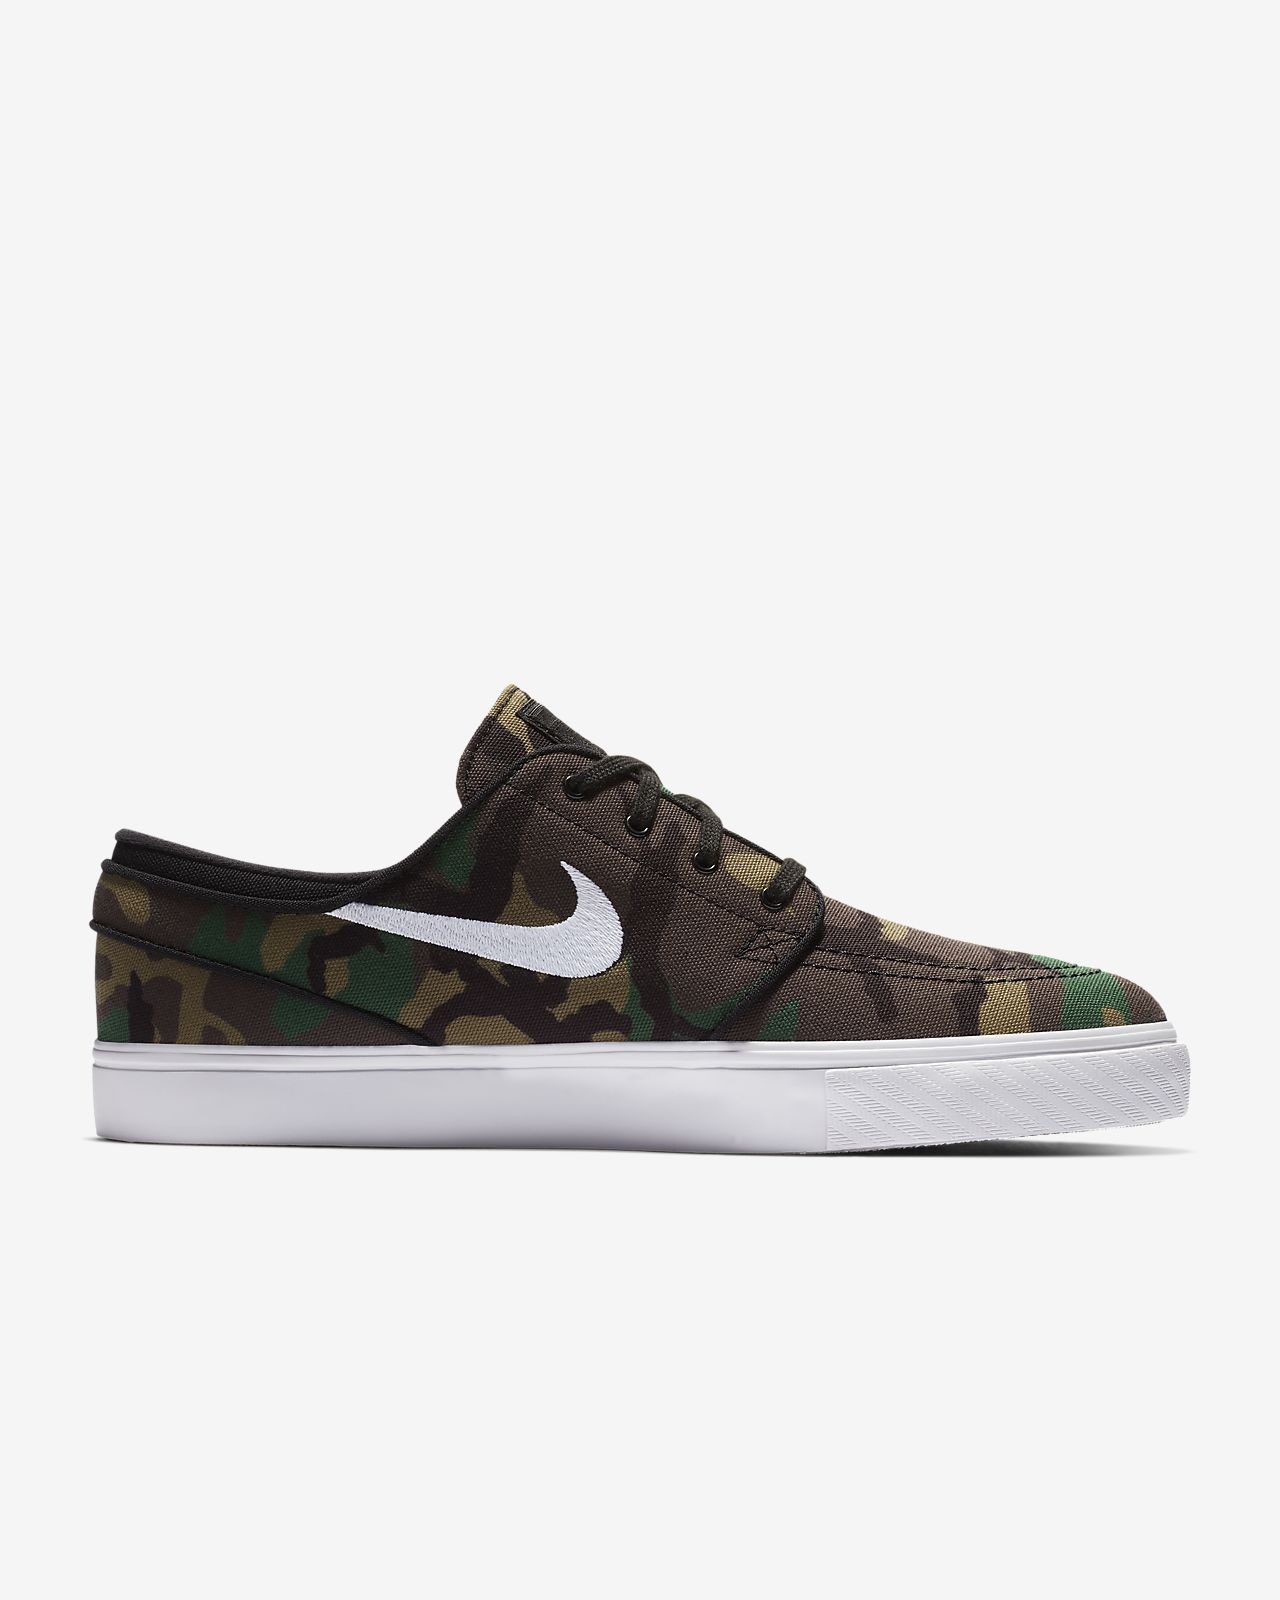 buy online 315e6 3743c ... Nike SB Zoom Stefan Janoski Canvas Men s Skate Shoe